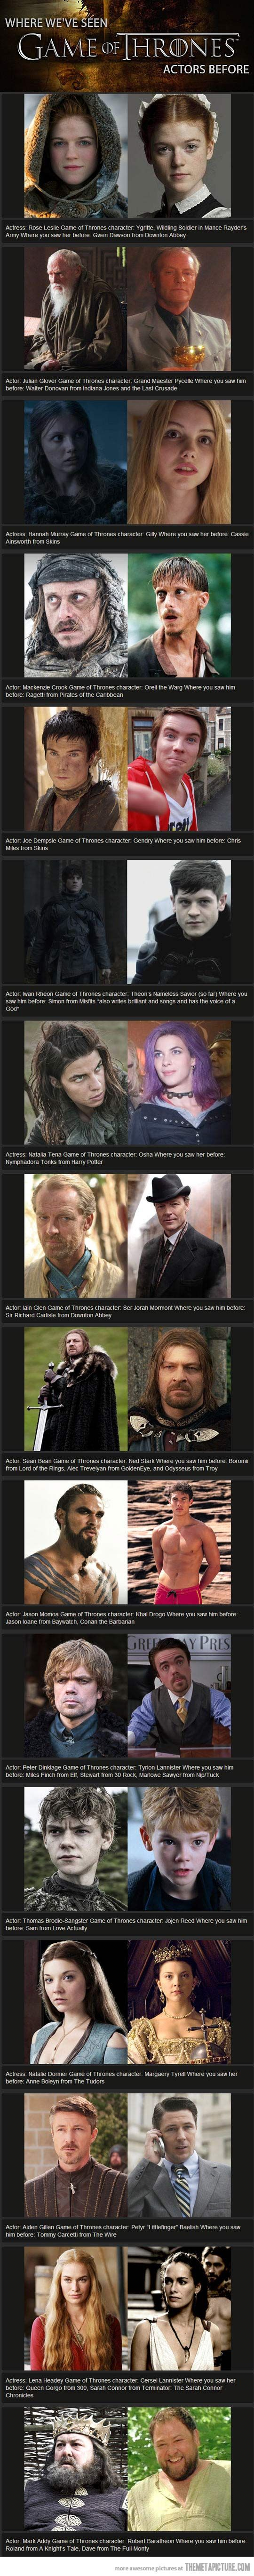 Hmmm I knew some of them looked familiar (besides Boromir haha) TONKS!!!!